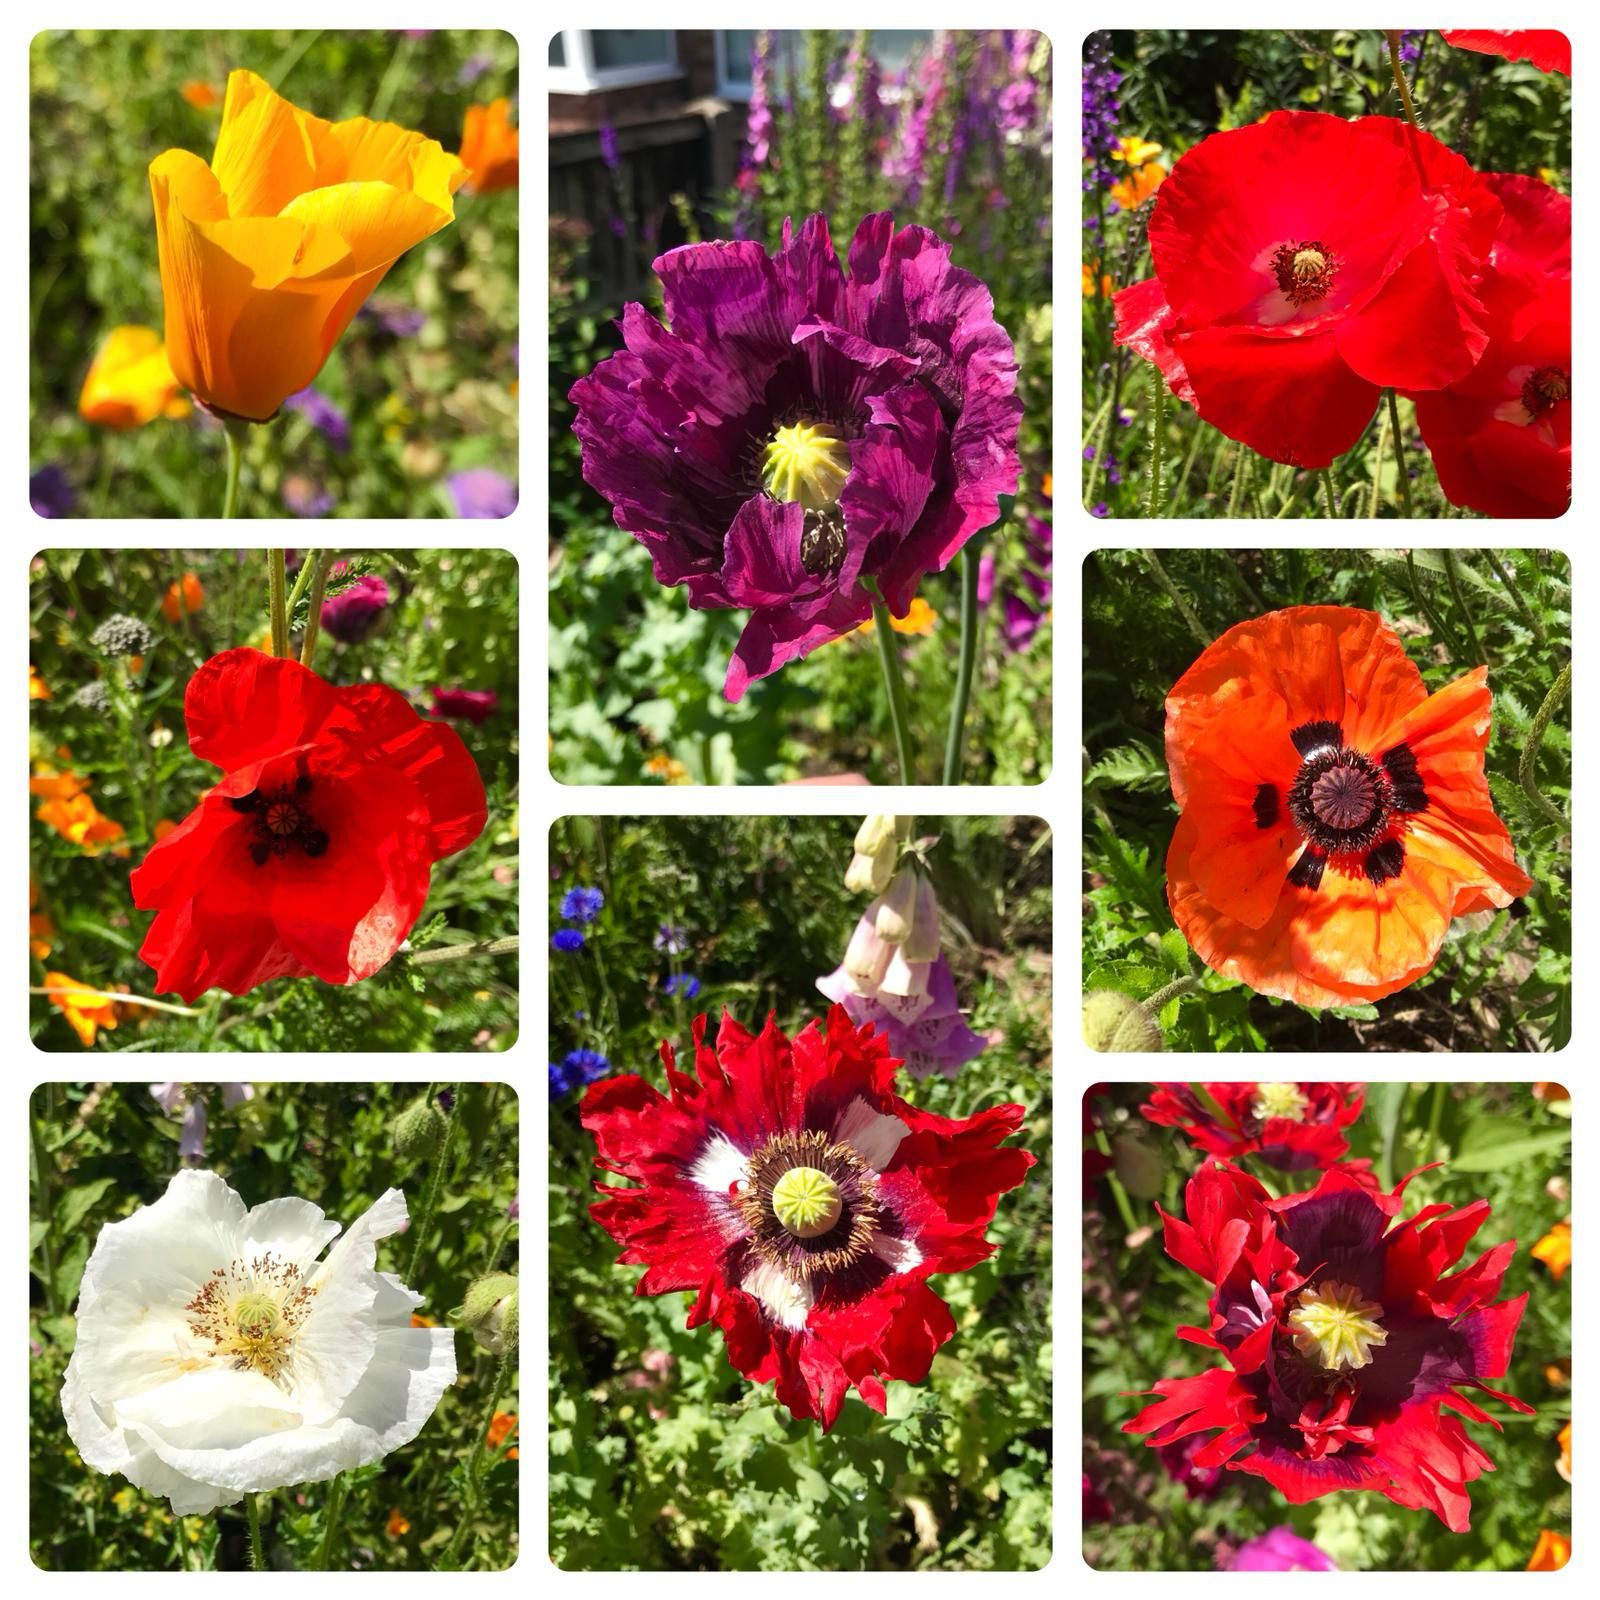 These poppy hybrids appearing all over my garden!